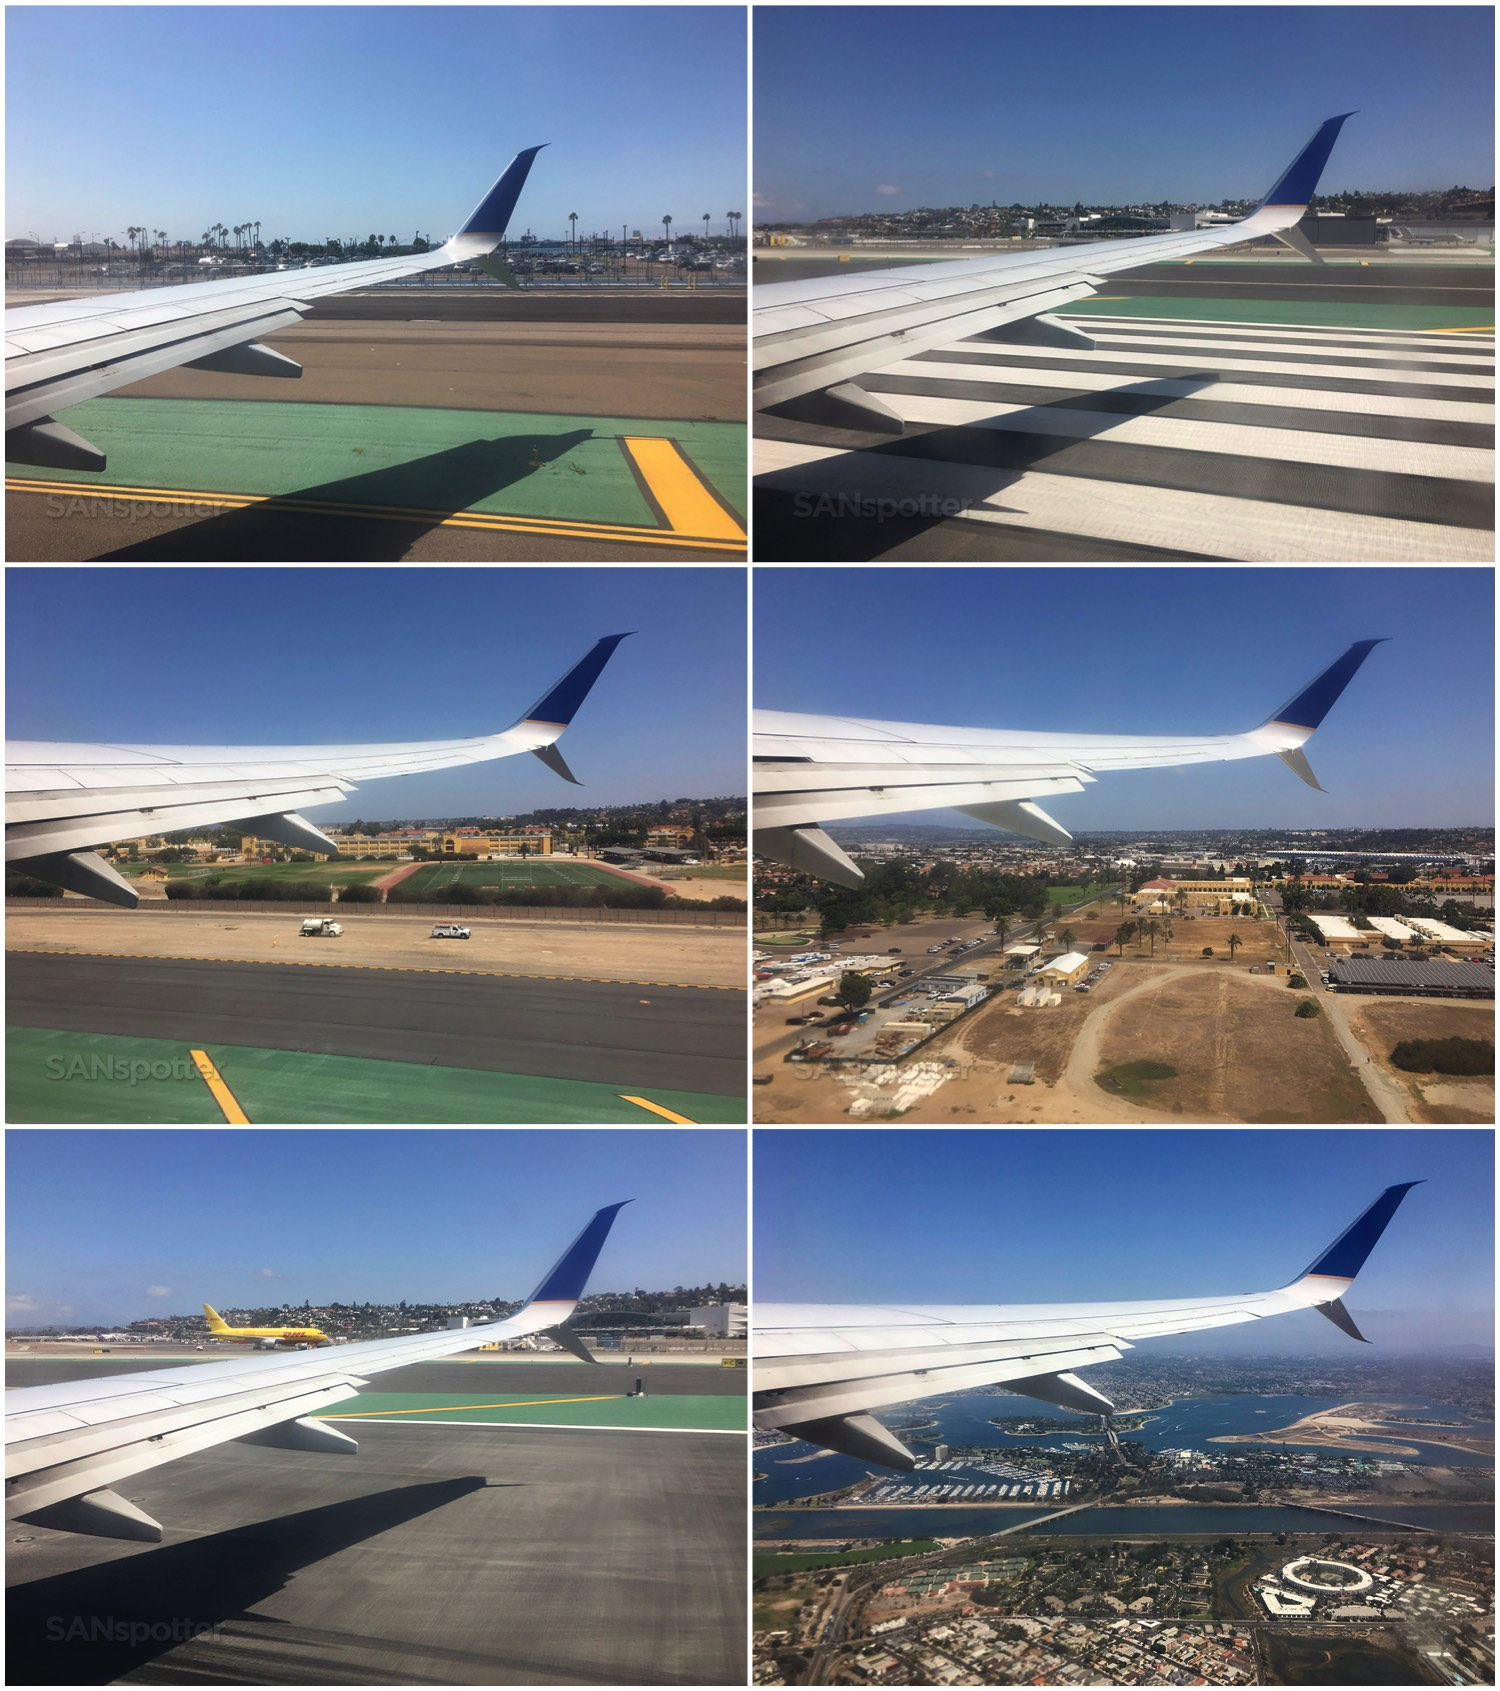 Departing San Diego airport United Airlines 737